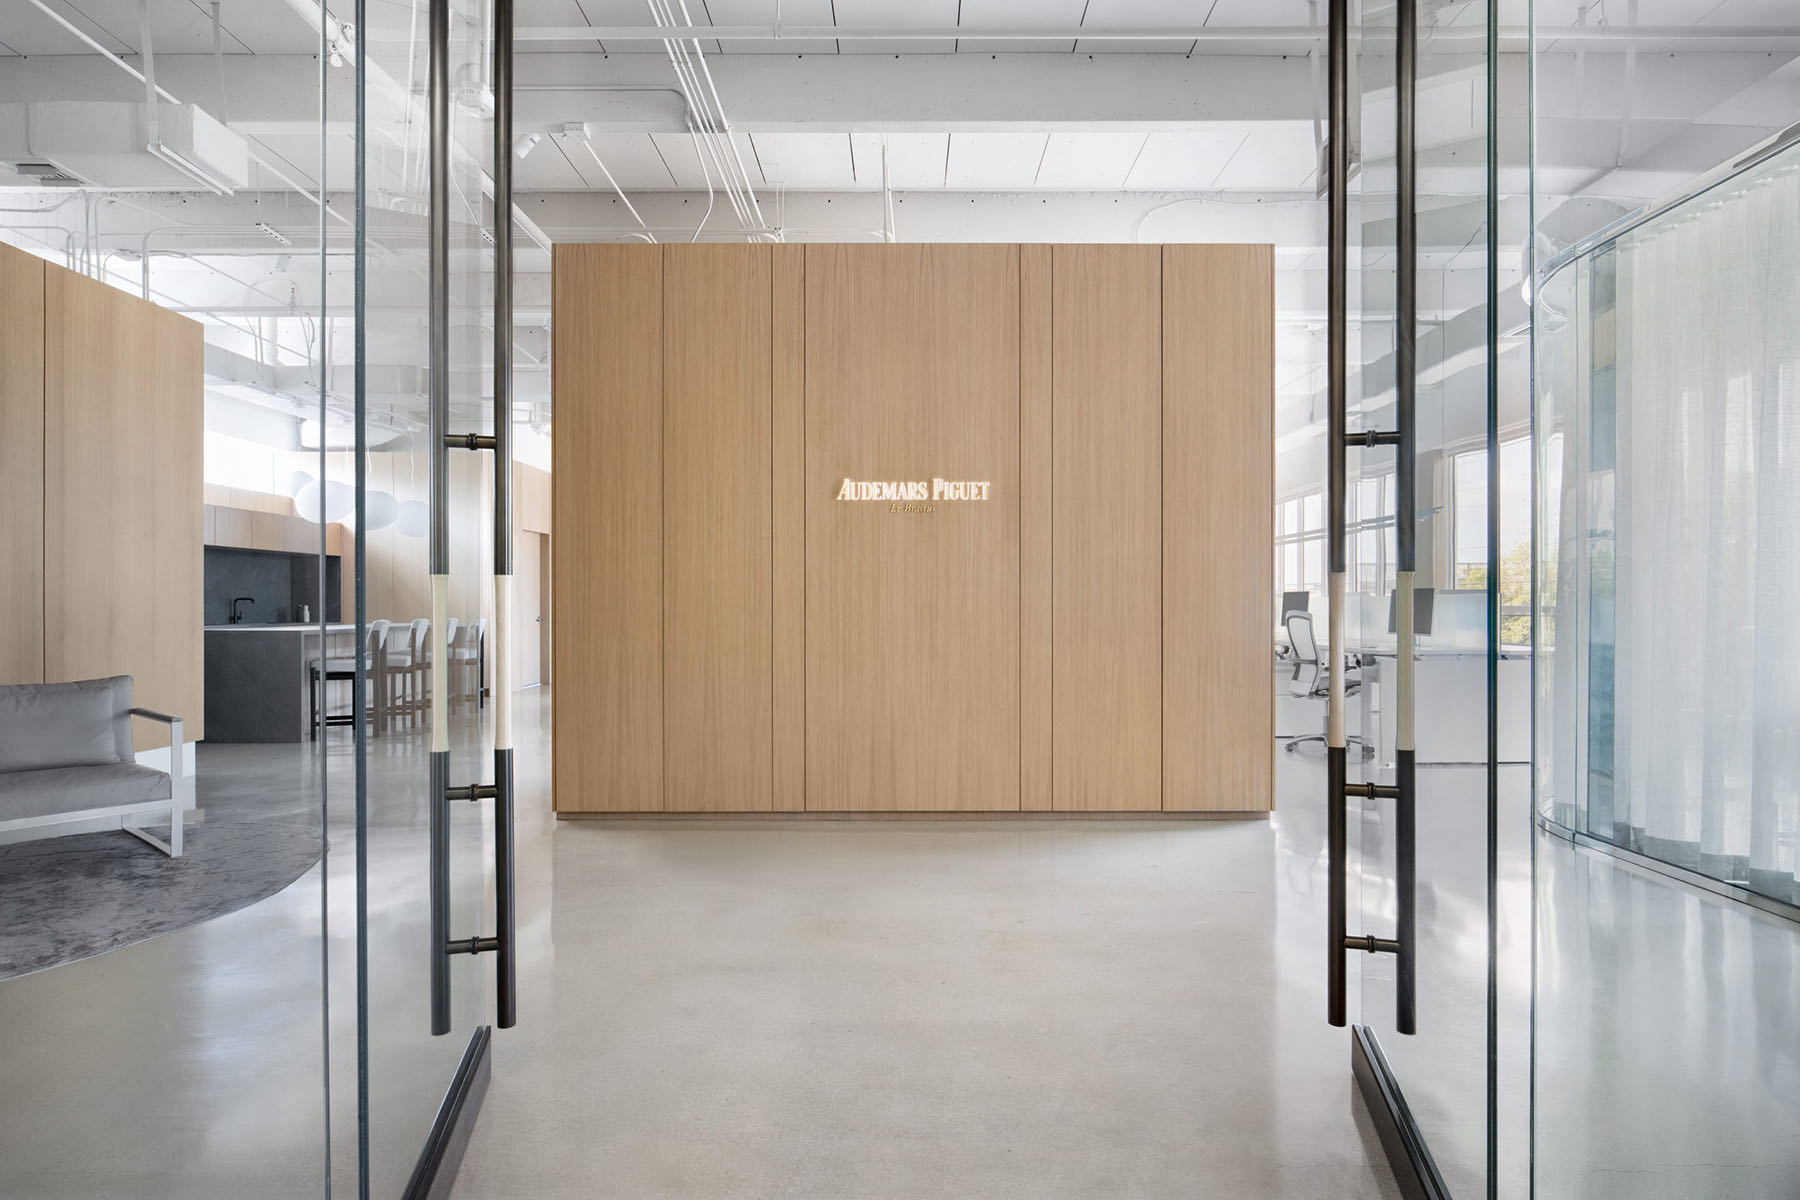 audemars-piguet-office-2